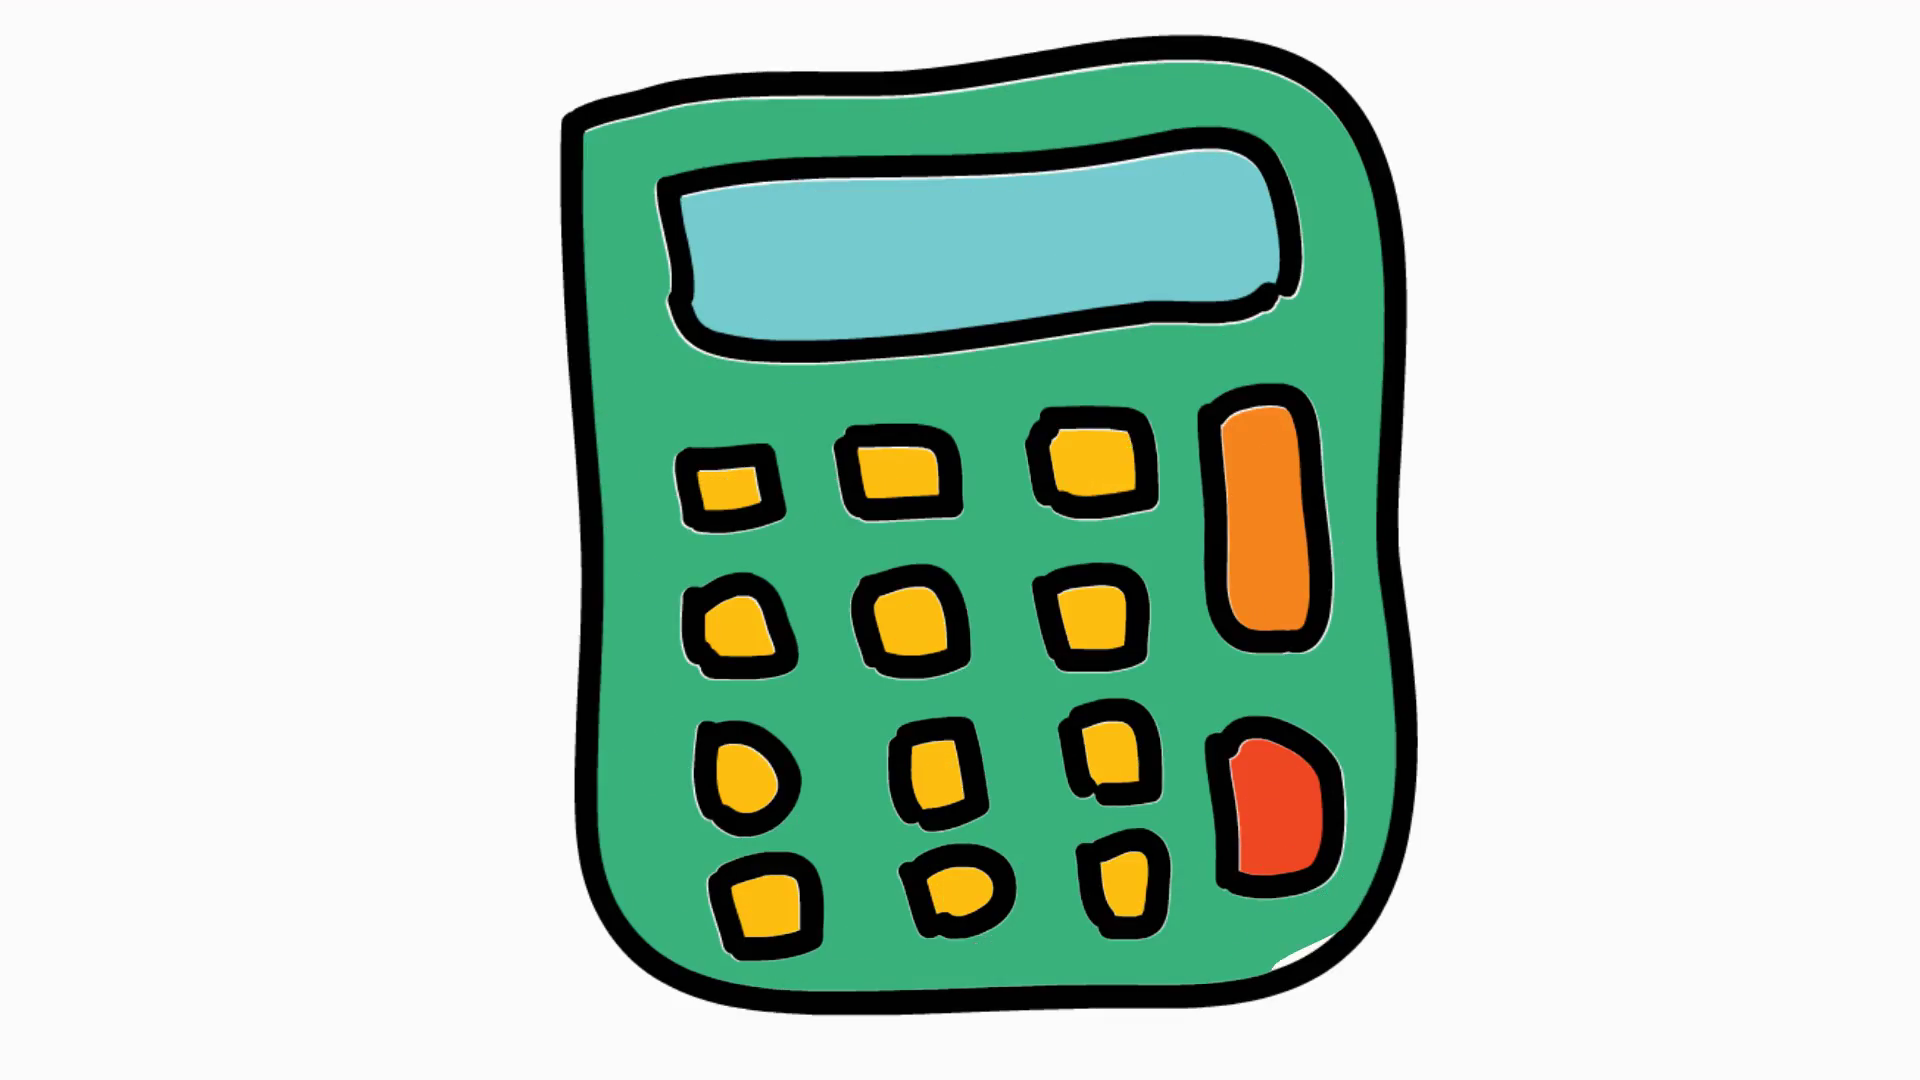 Calculator Clipart Clip Arts For Free On Transparent - Calculator Clipart  Black And White, HD Png Download - kindpng